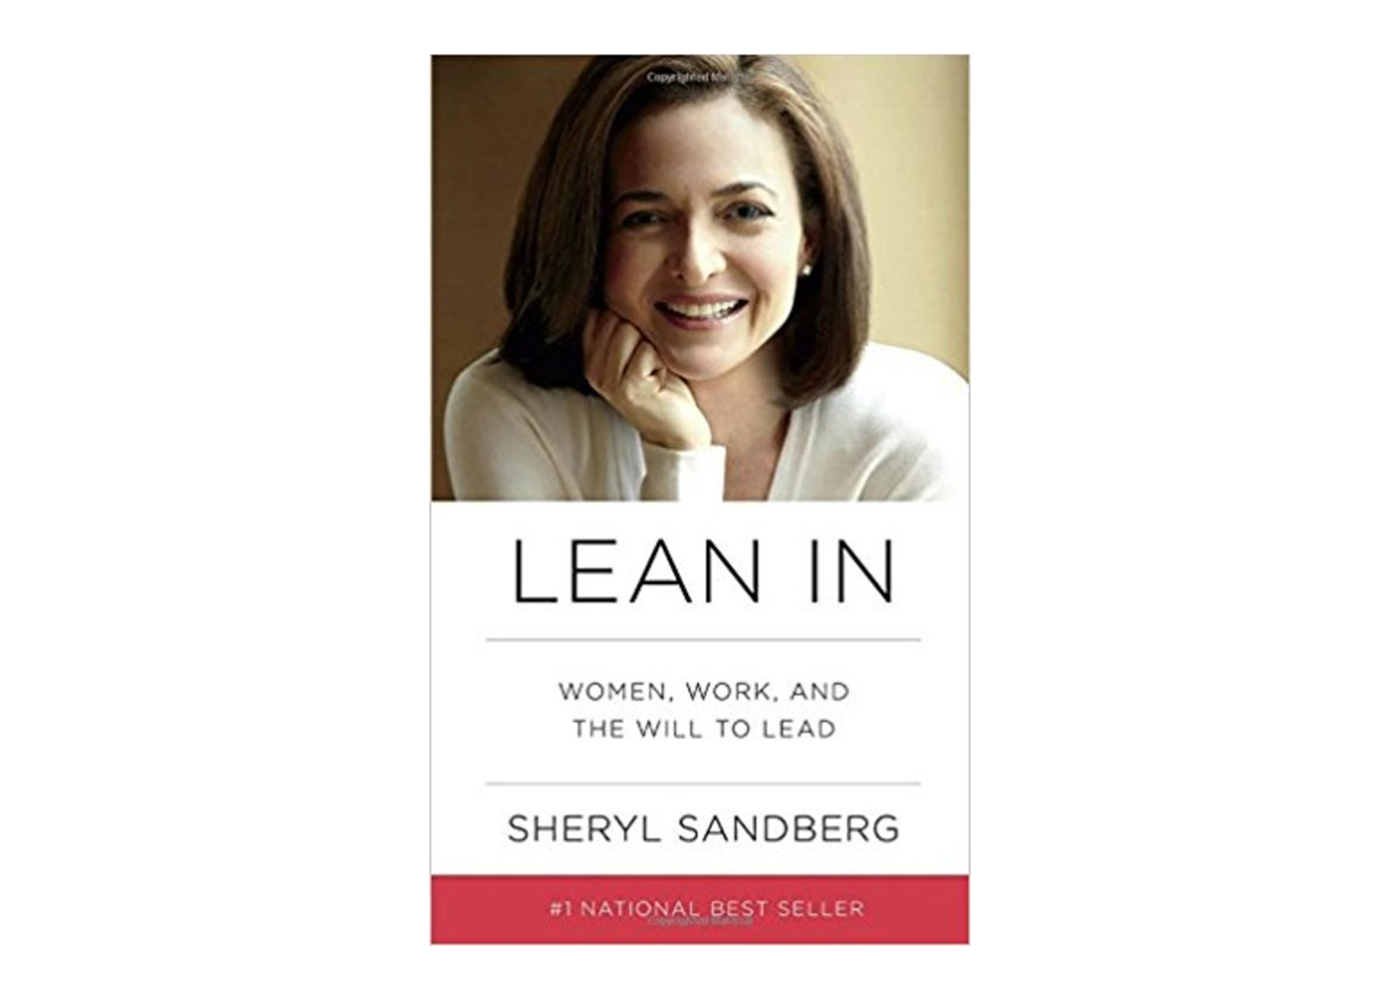 Lean In-Women, Work and the Will to Lead